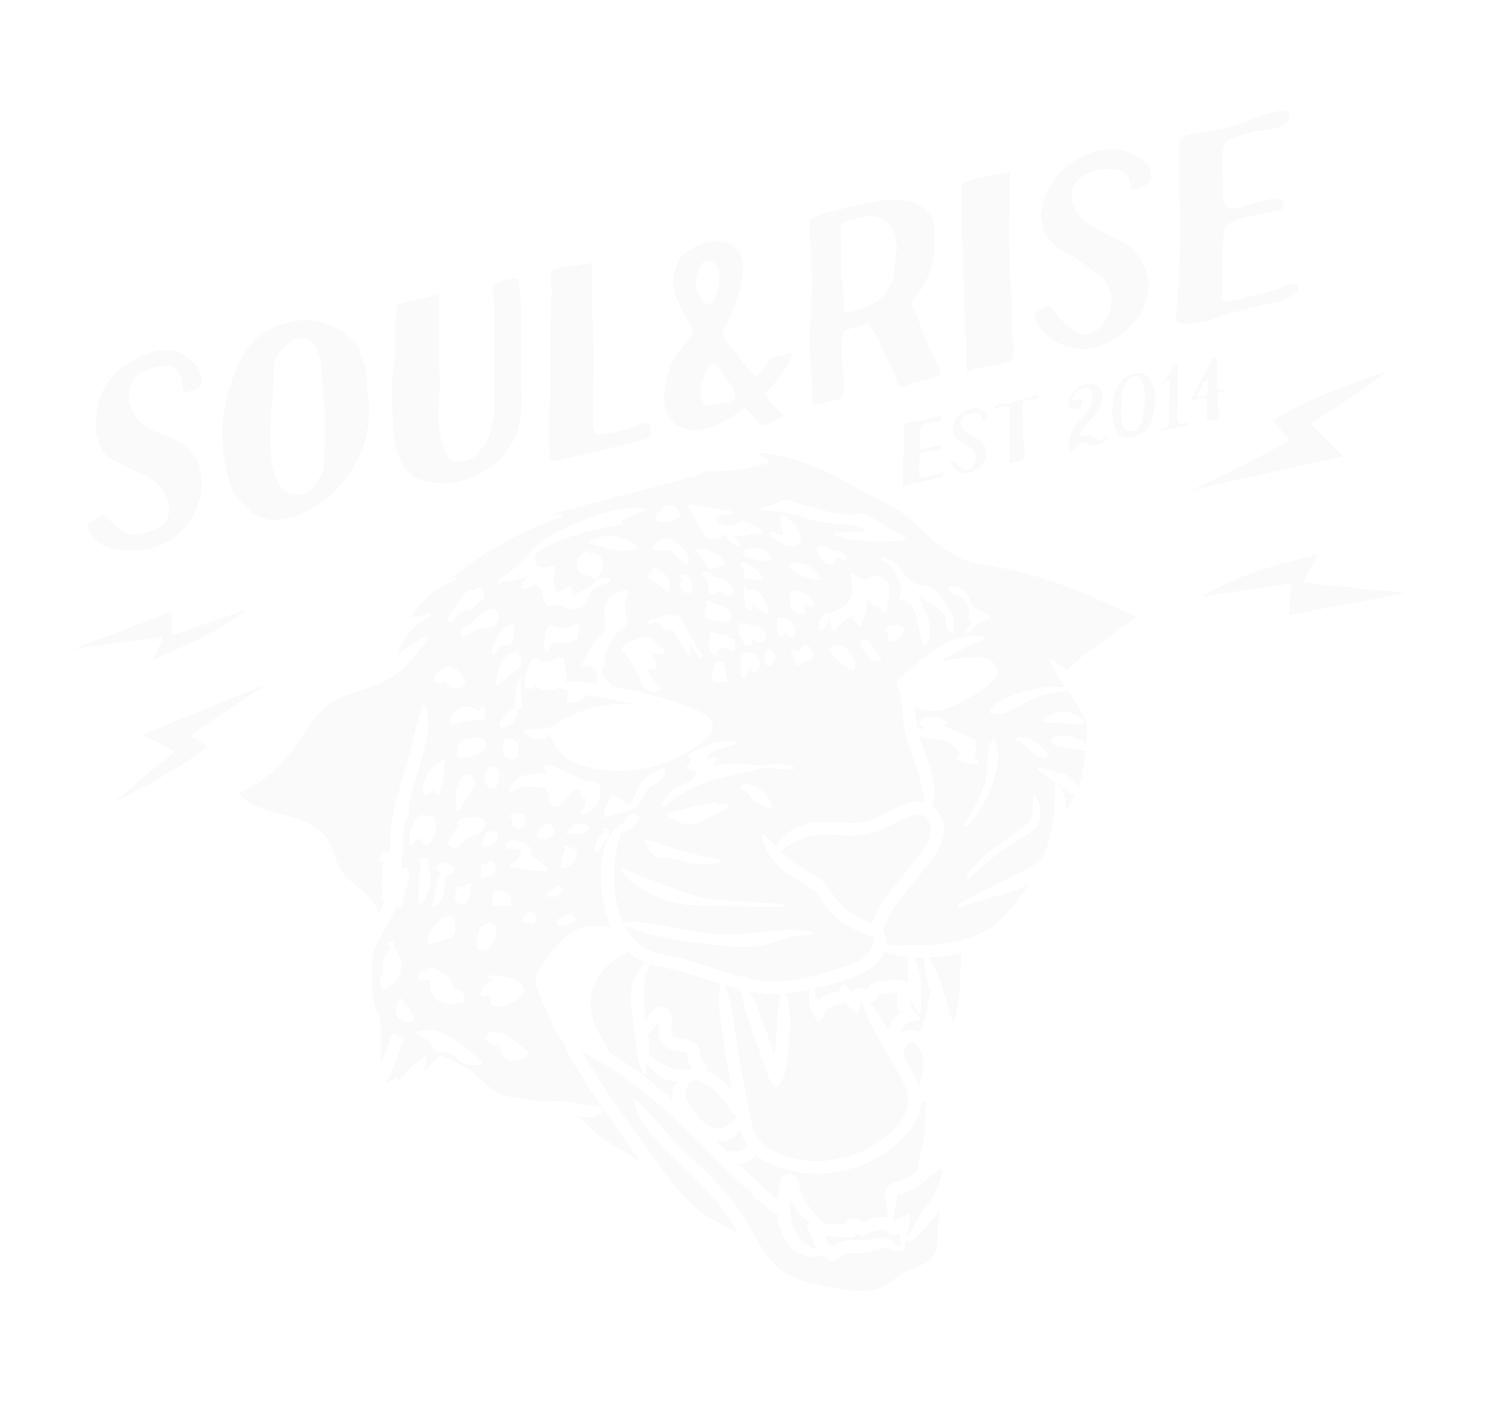 Soul & Rise - Creative Wedding Videography & Photography based in Northern Ireland